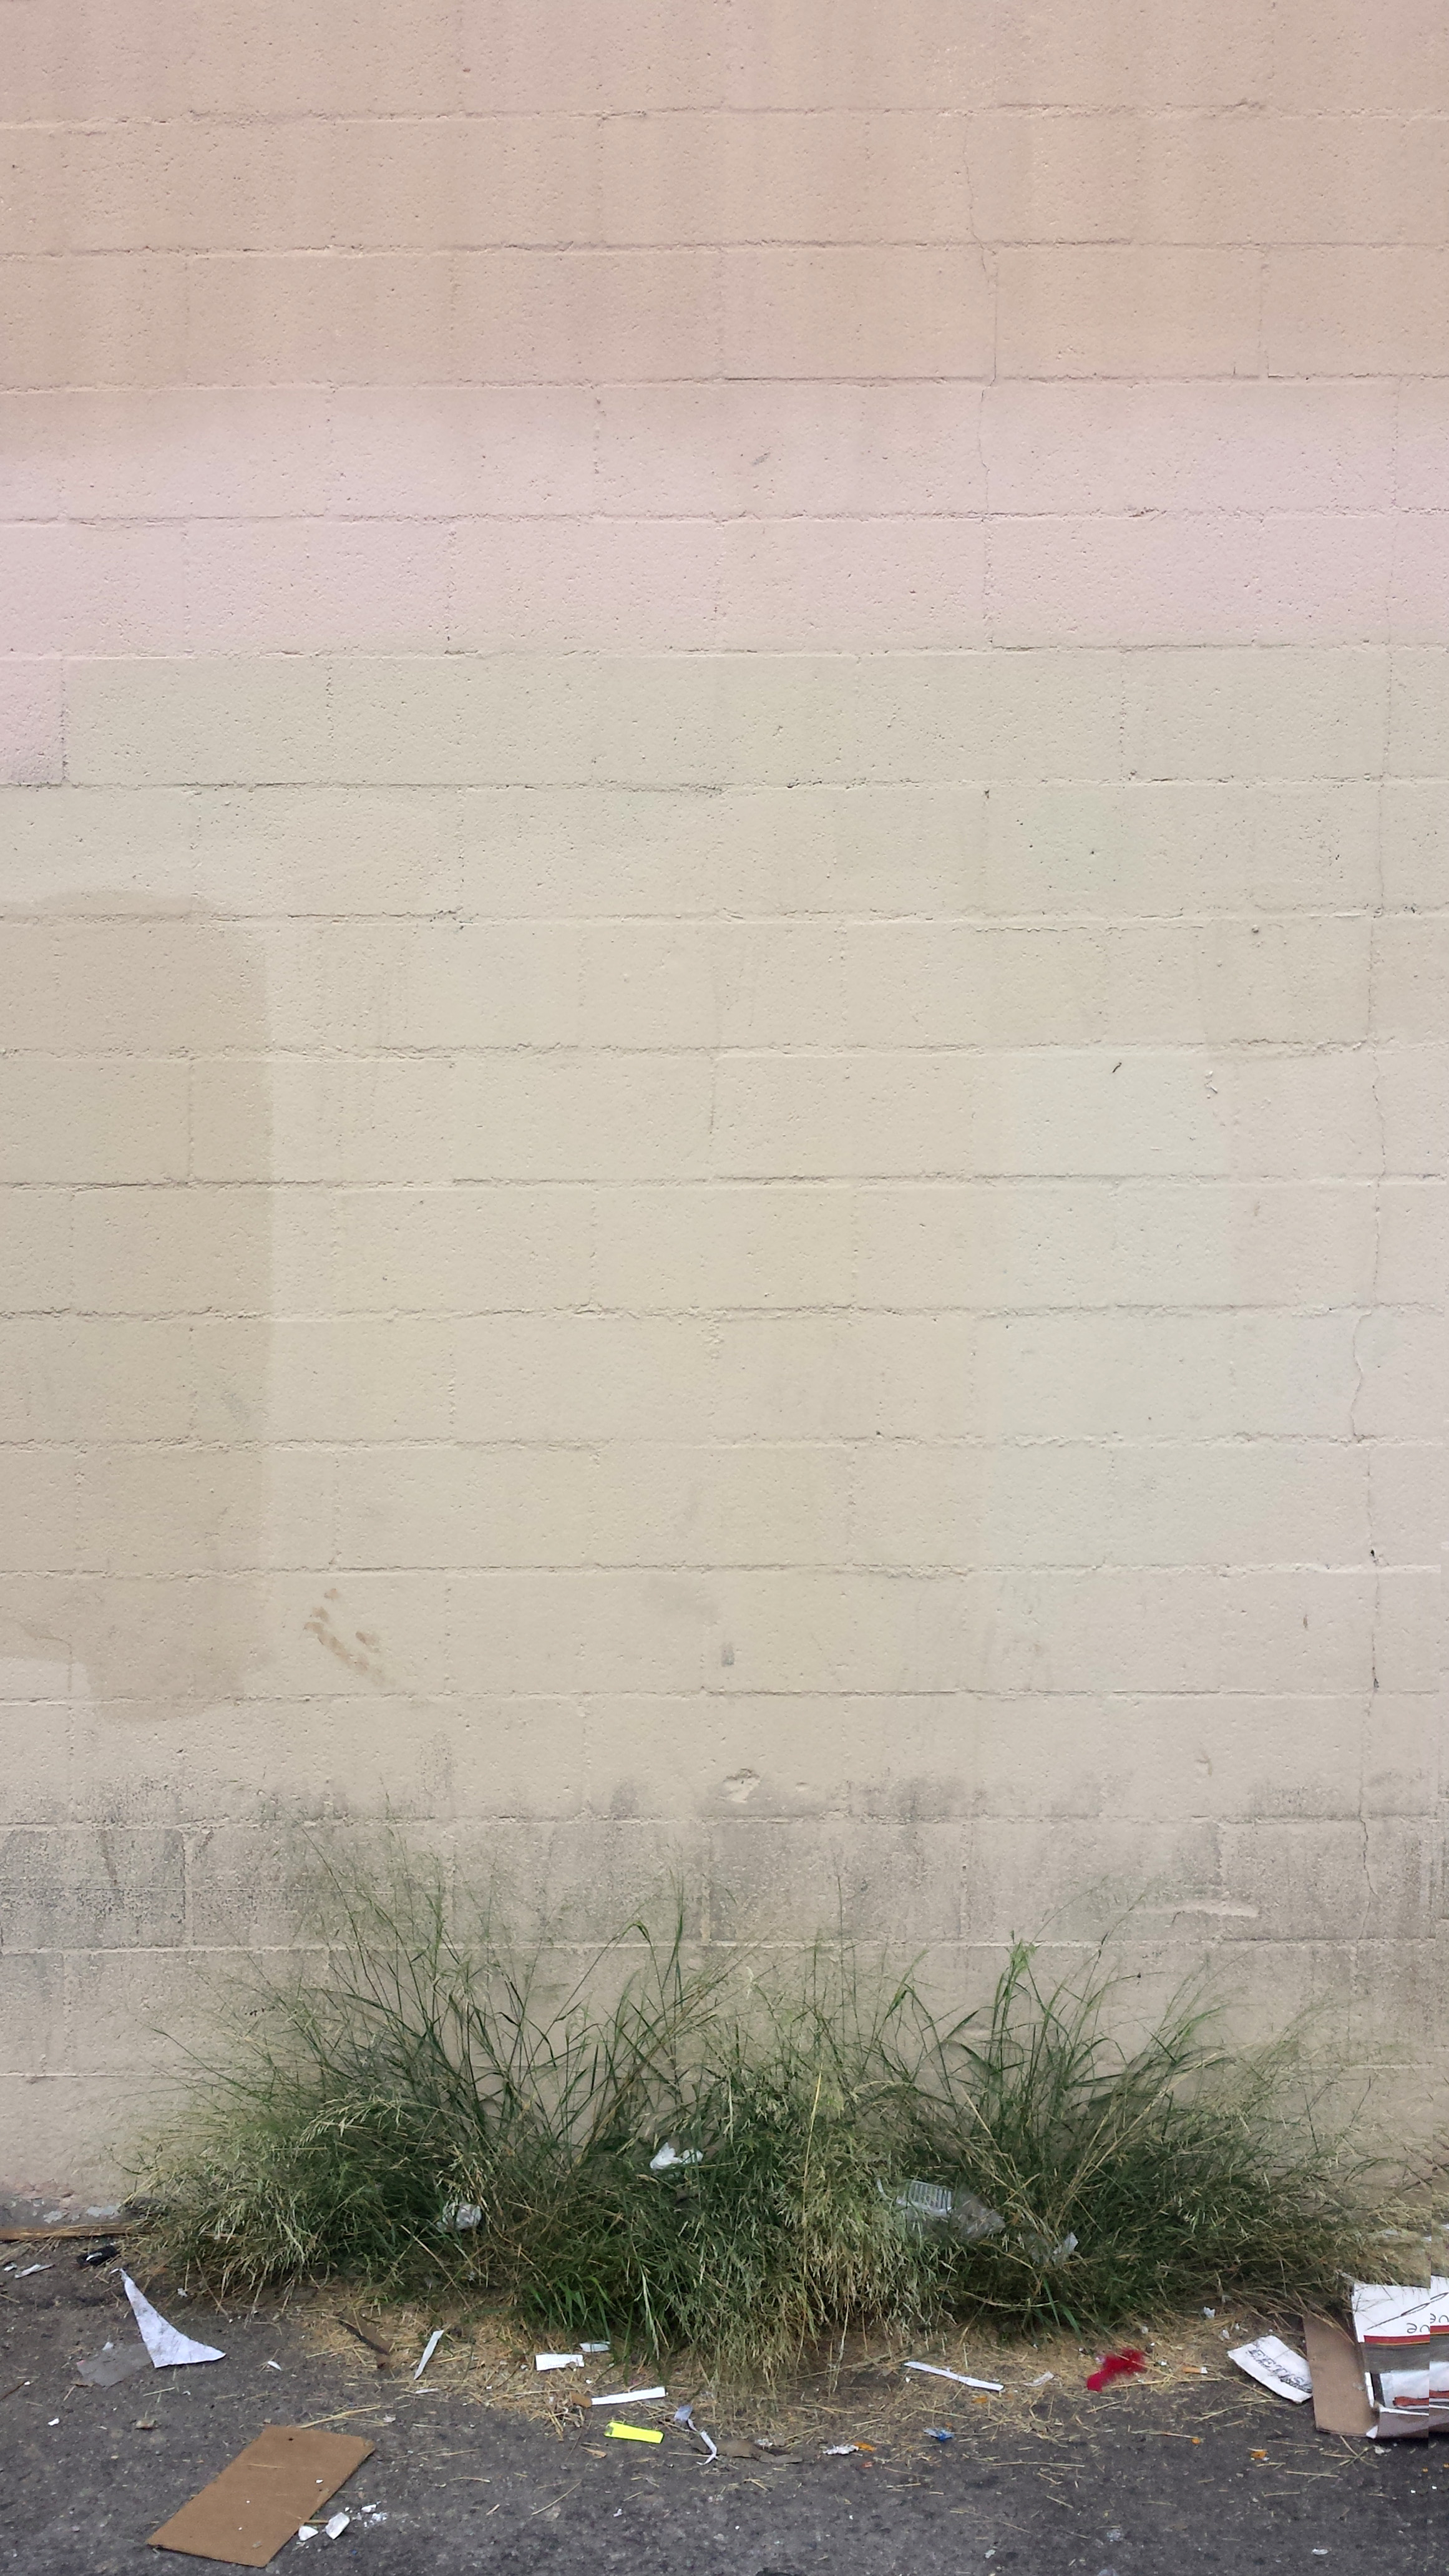 20171101_124740. Wall with Grass